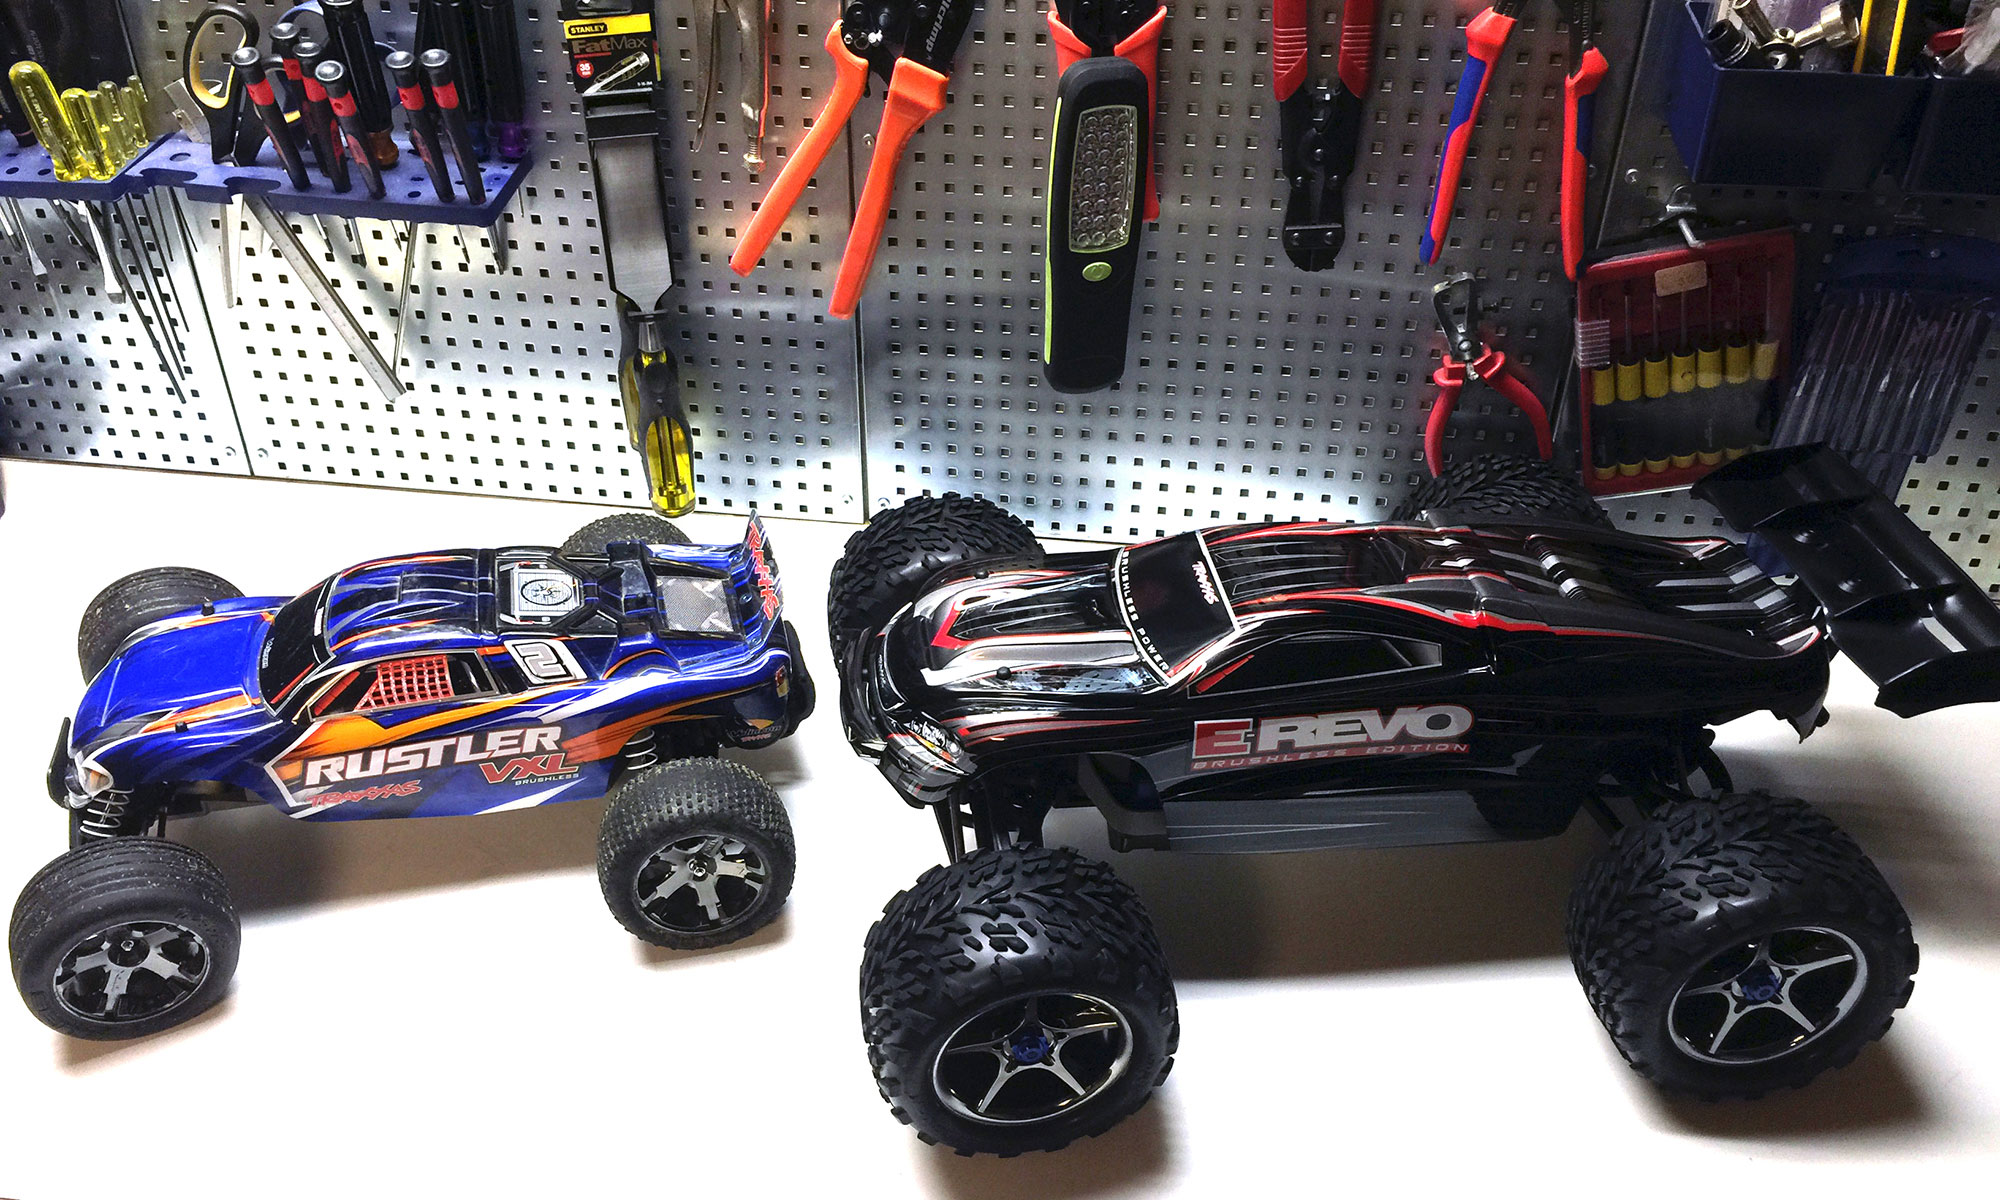 deguno - tools, RC cars, gadgets and consumer electronics